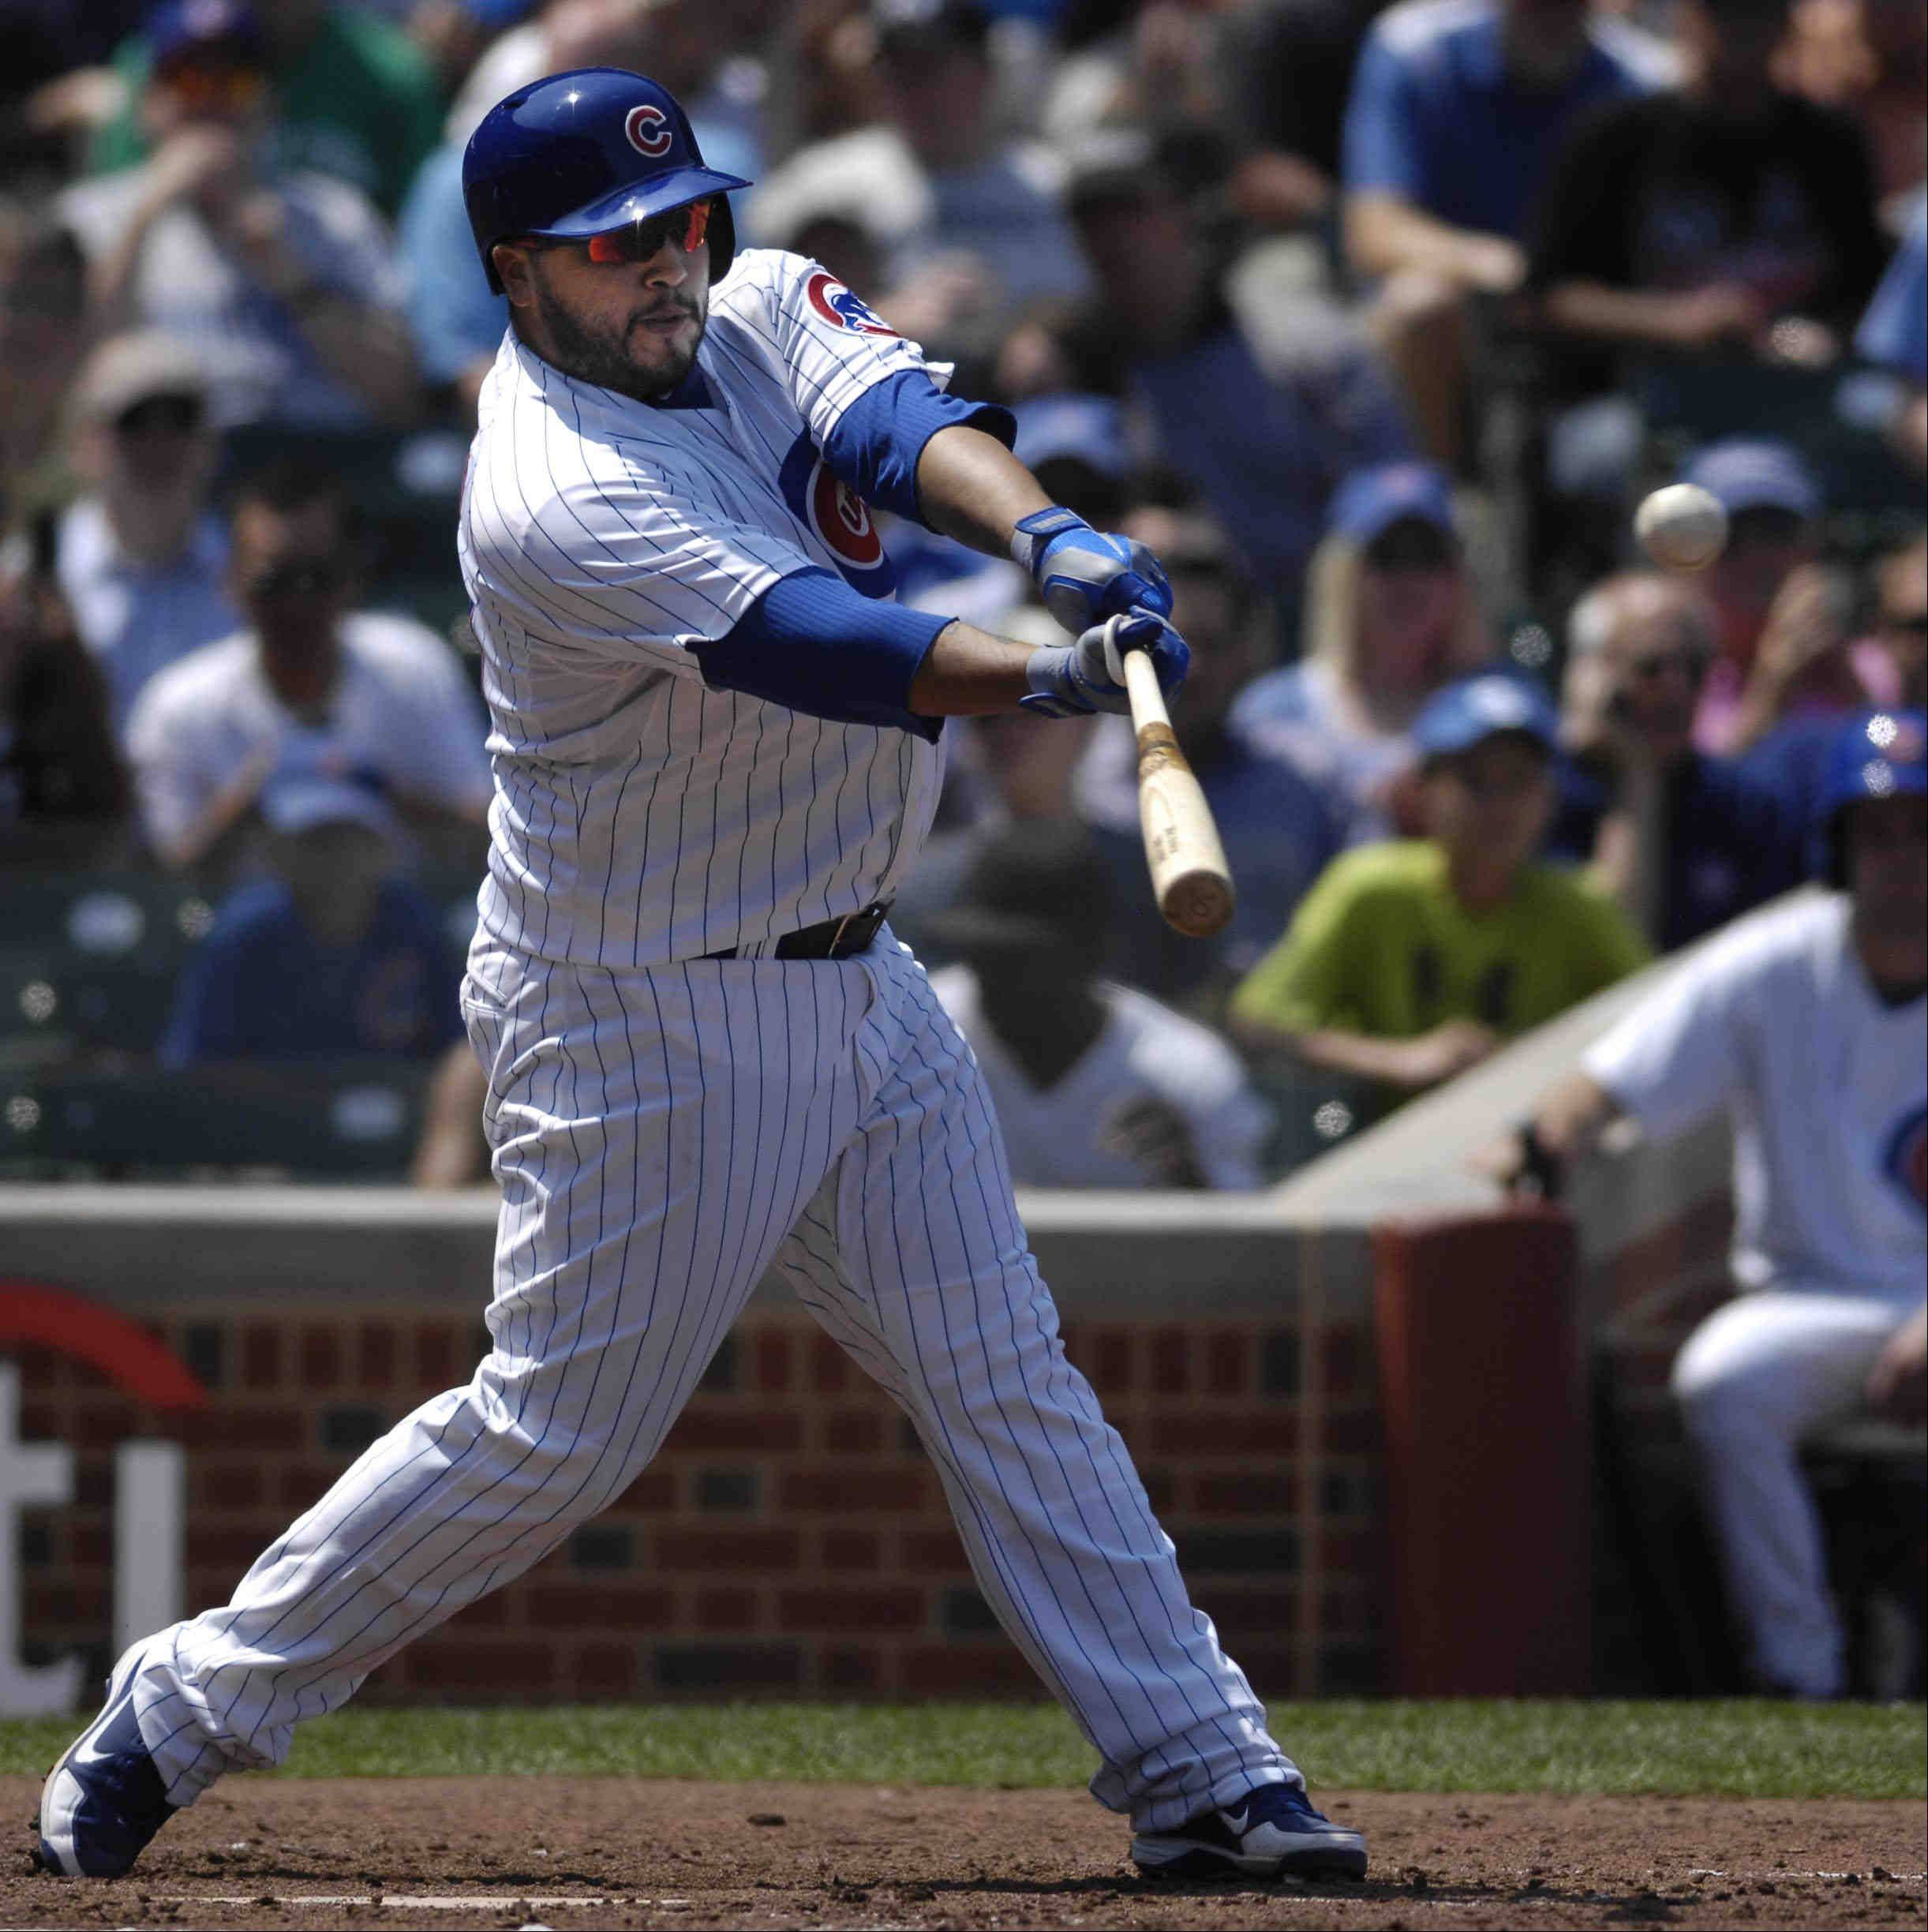 Chicago Cubs catcher Dioner Navarro hits a home run in the second inning.